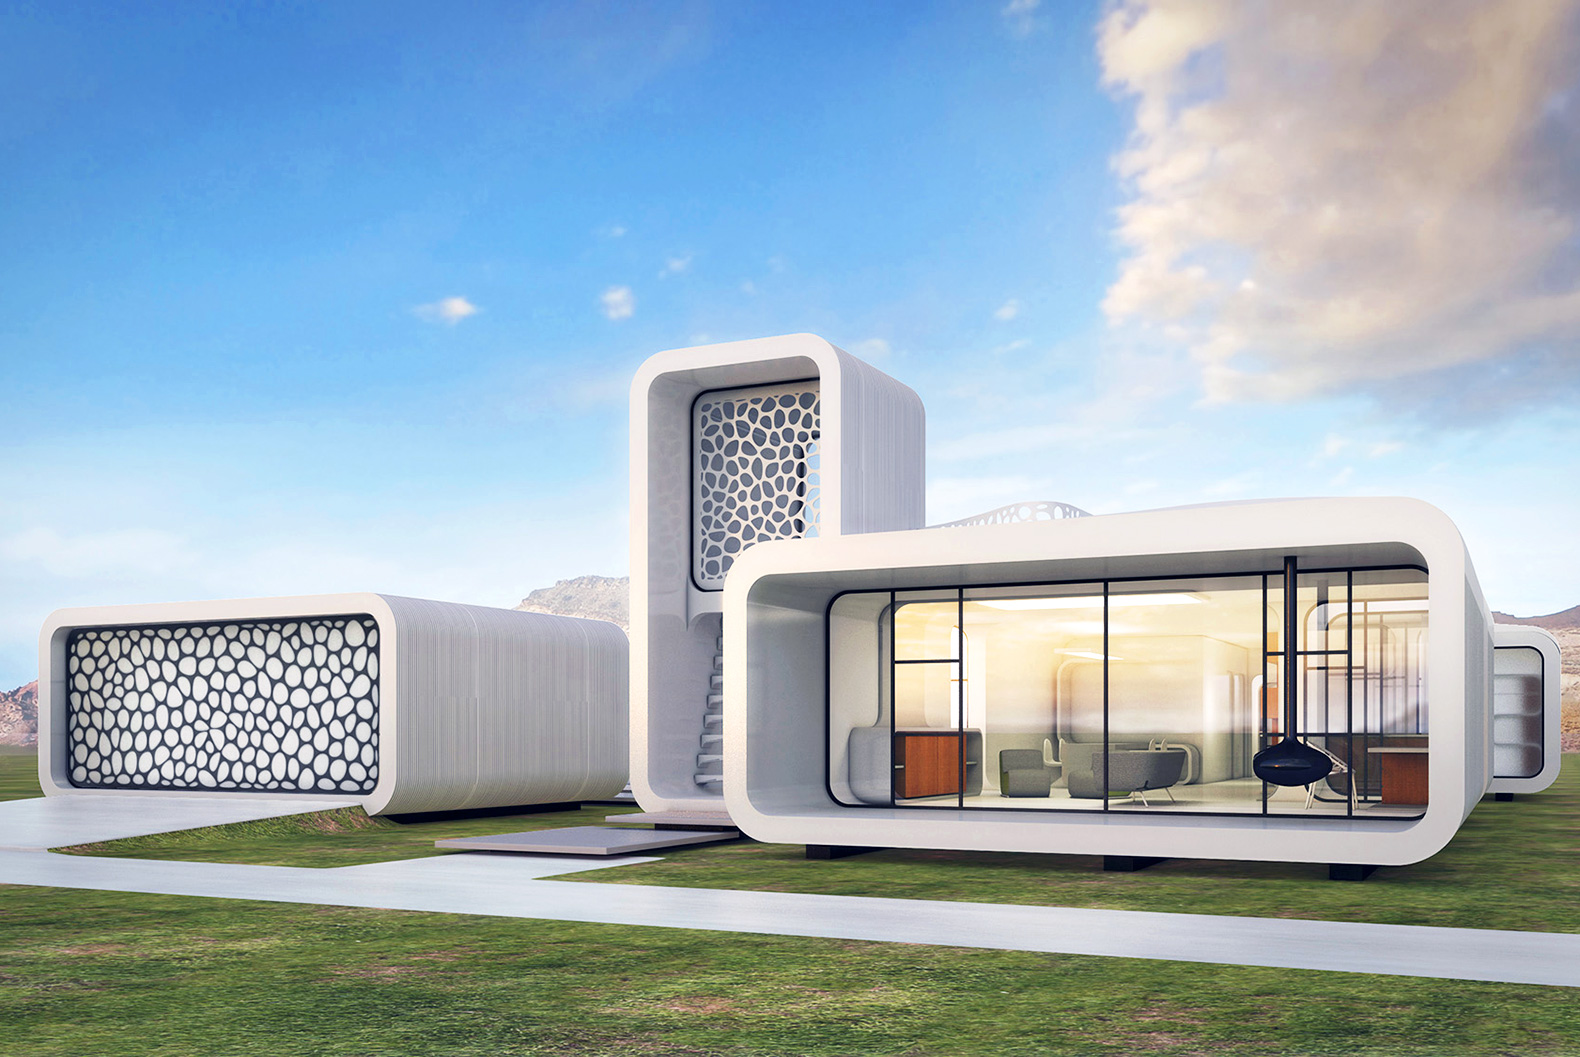 dubai to print worlds first 3d printed office building dubai 3d printed office building inhabitat green design innovation architecture